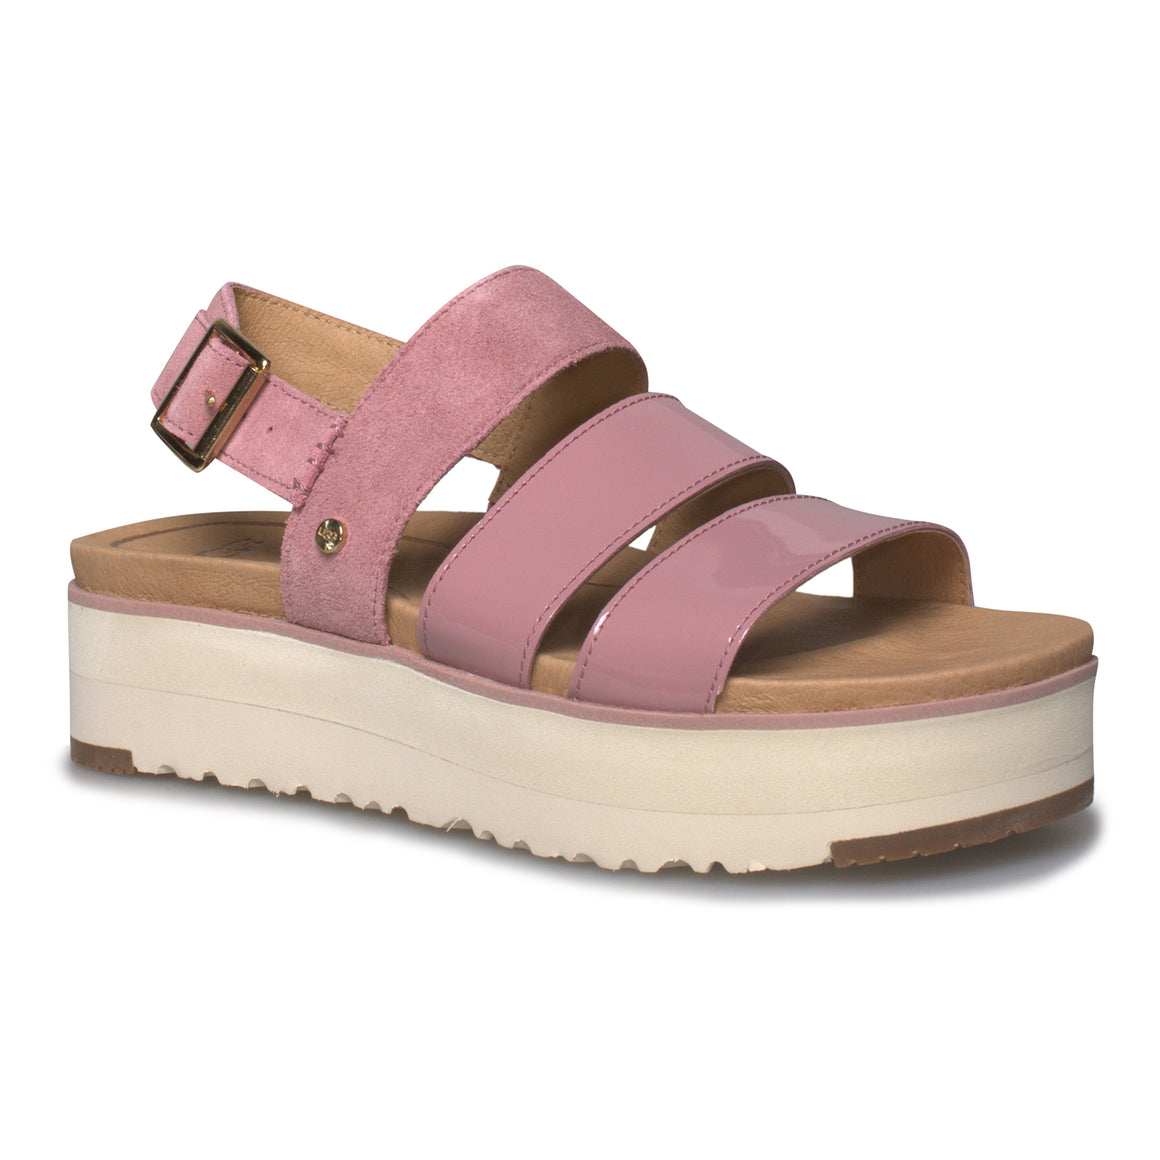 UGG Braelynn Pink Dawn Sandals - Women's